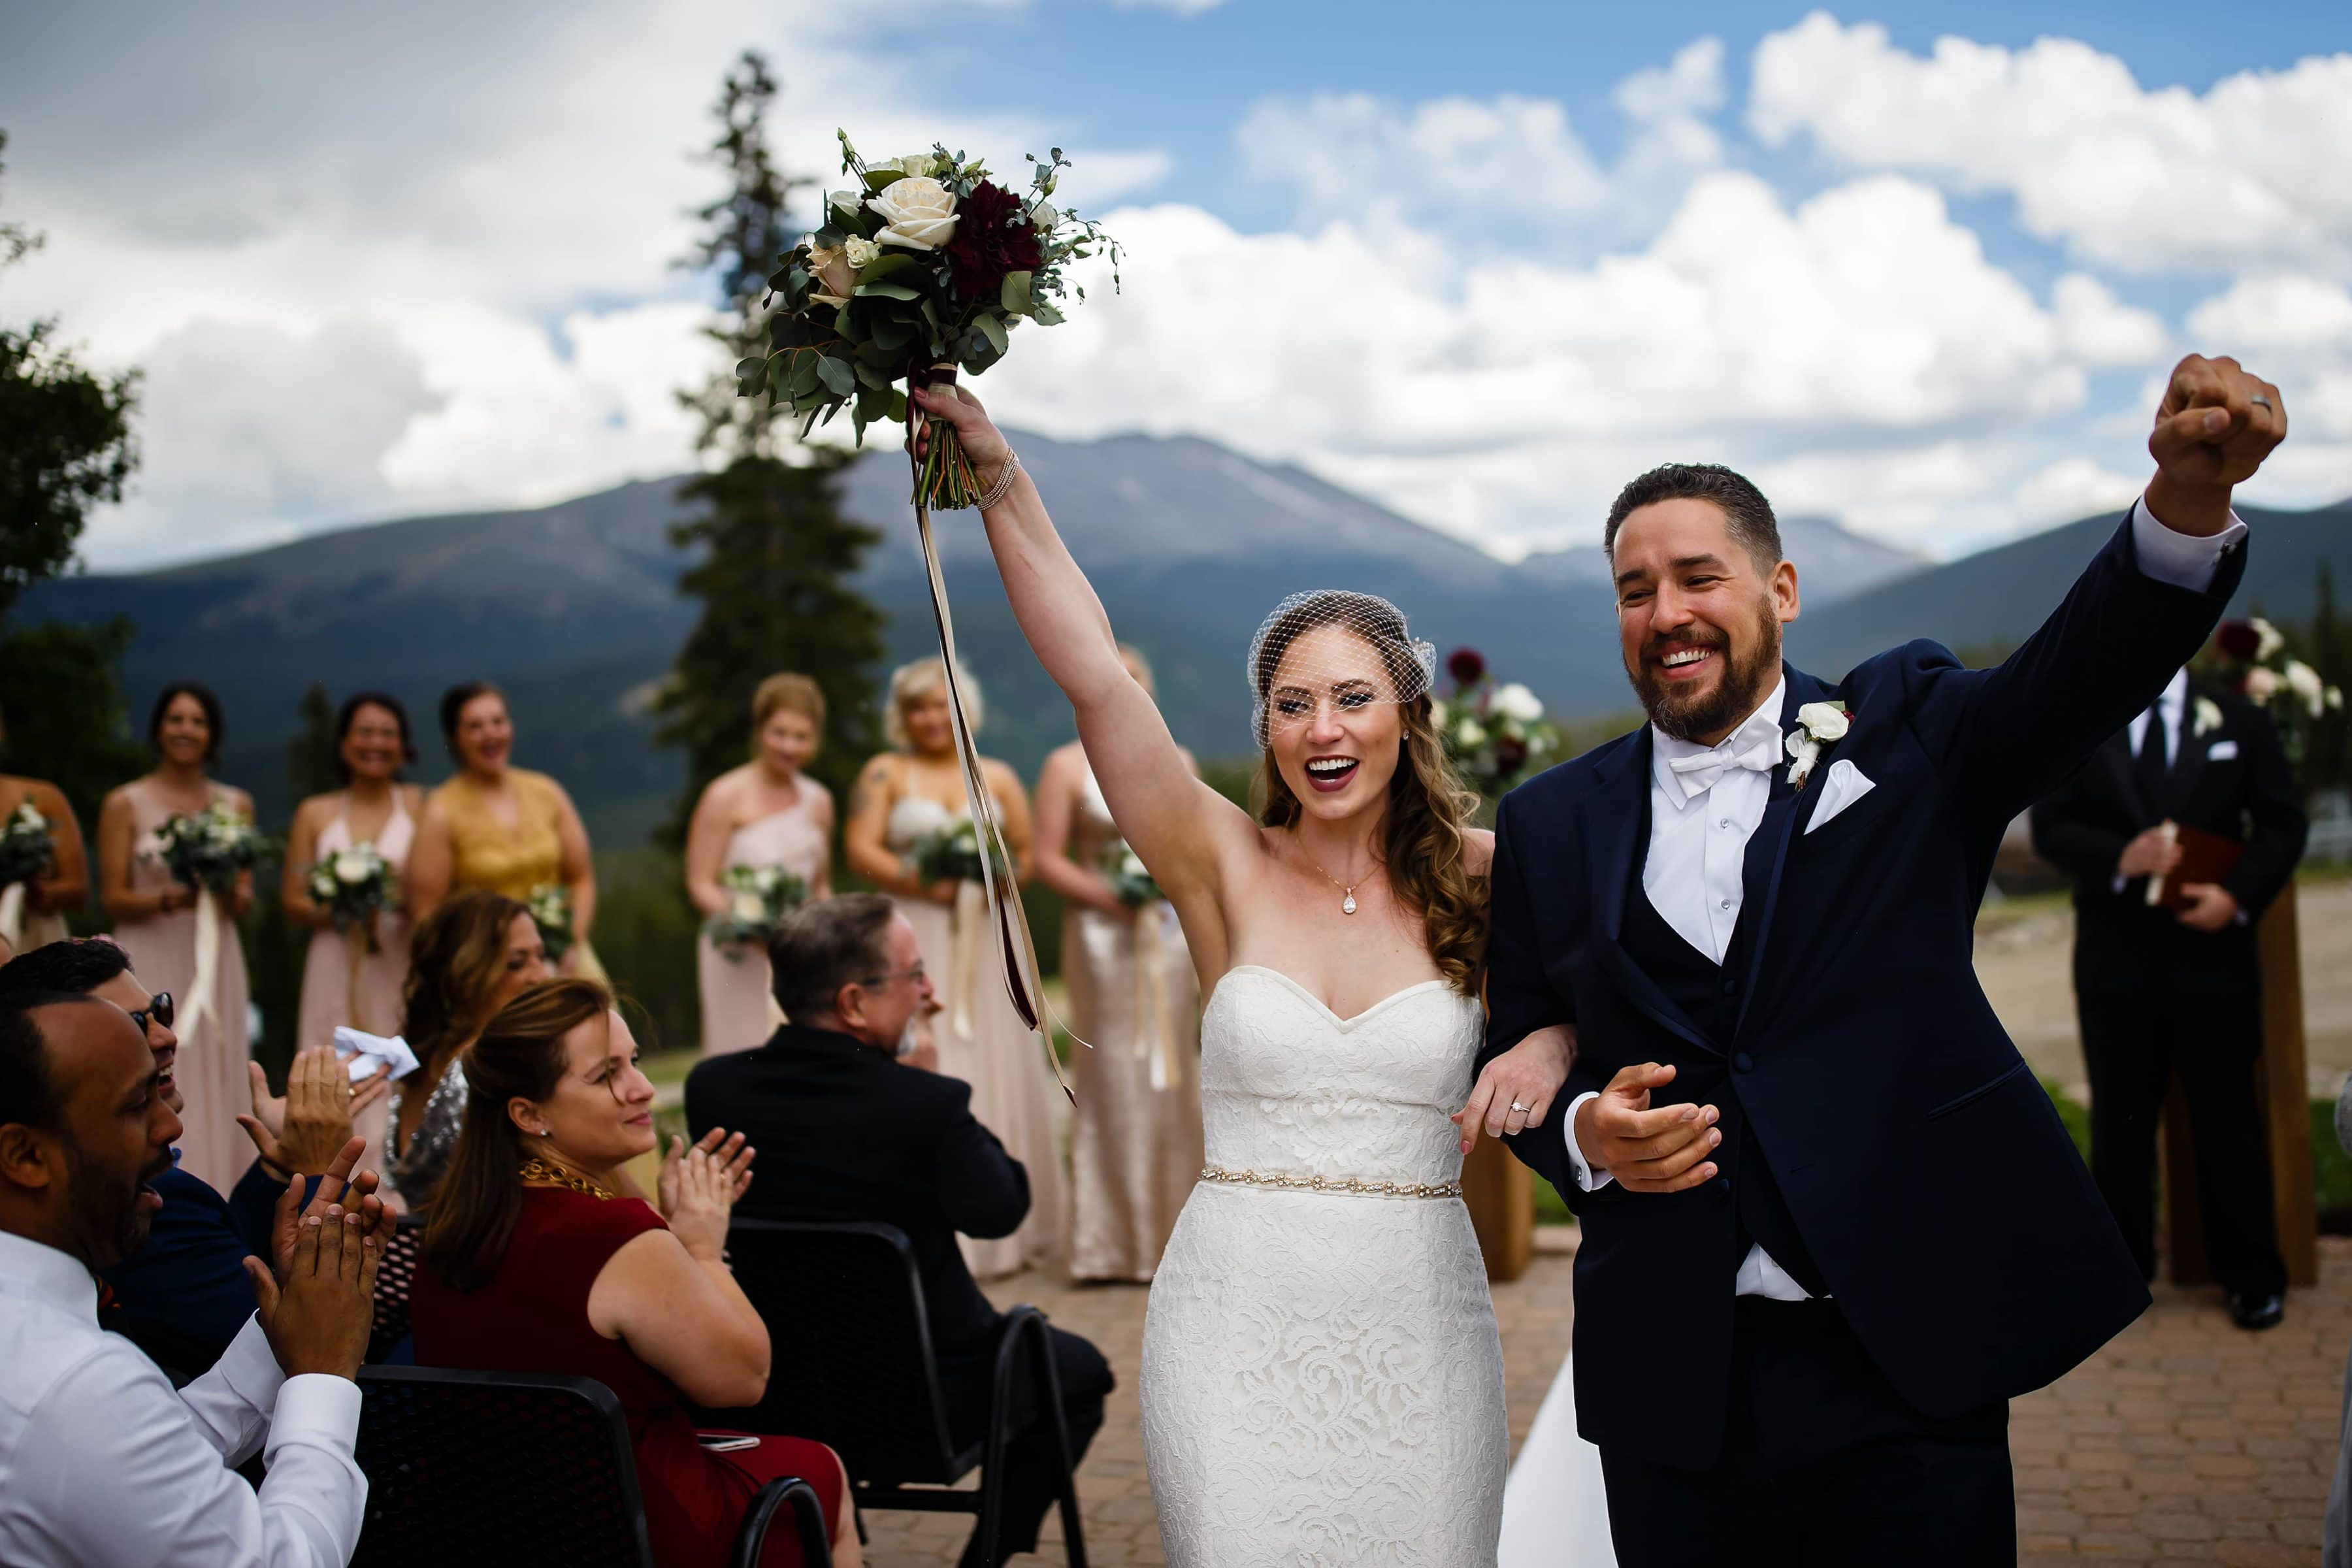 Nick and Sharon react following their TenMile Station wedding ceremony in Breckenridge